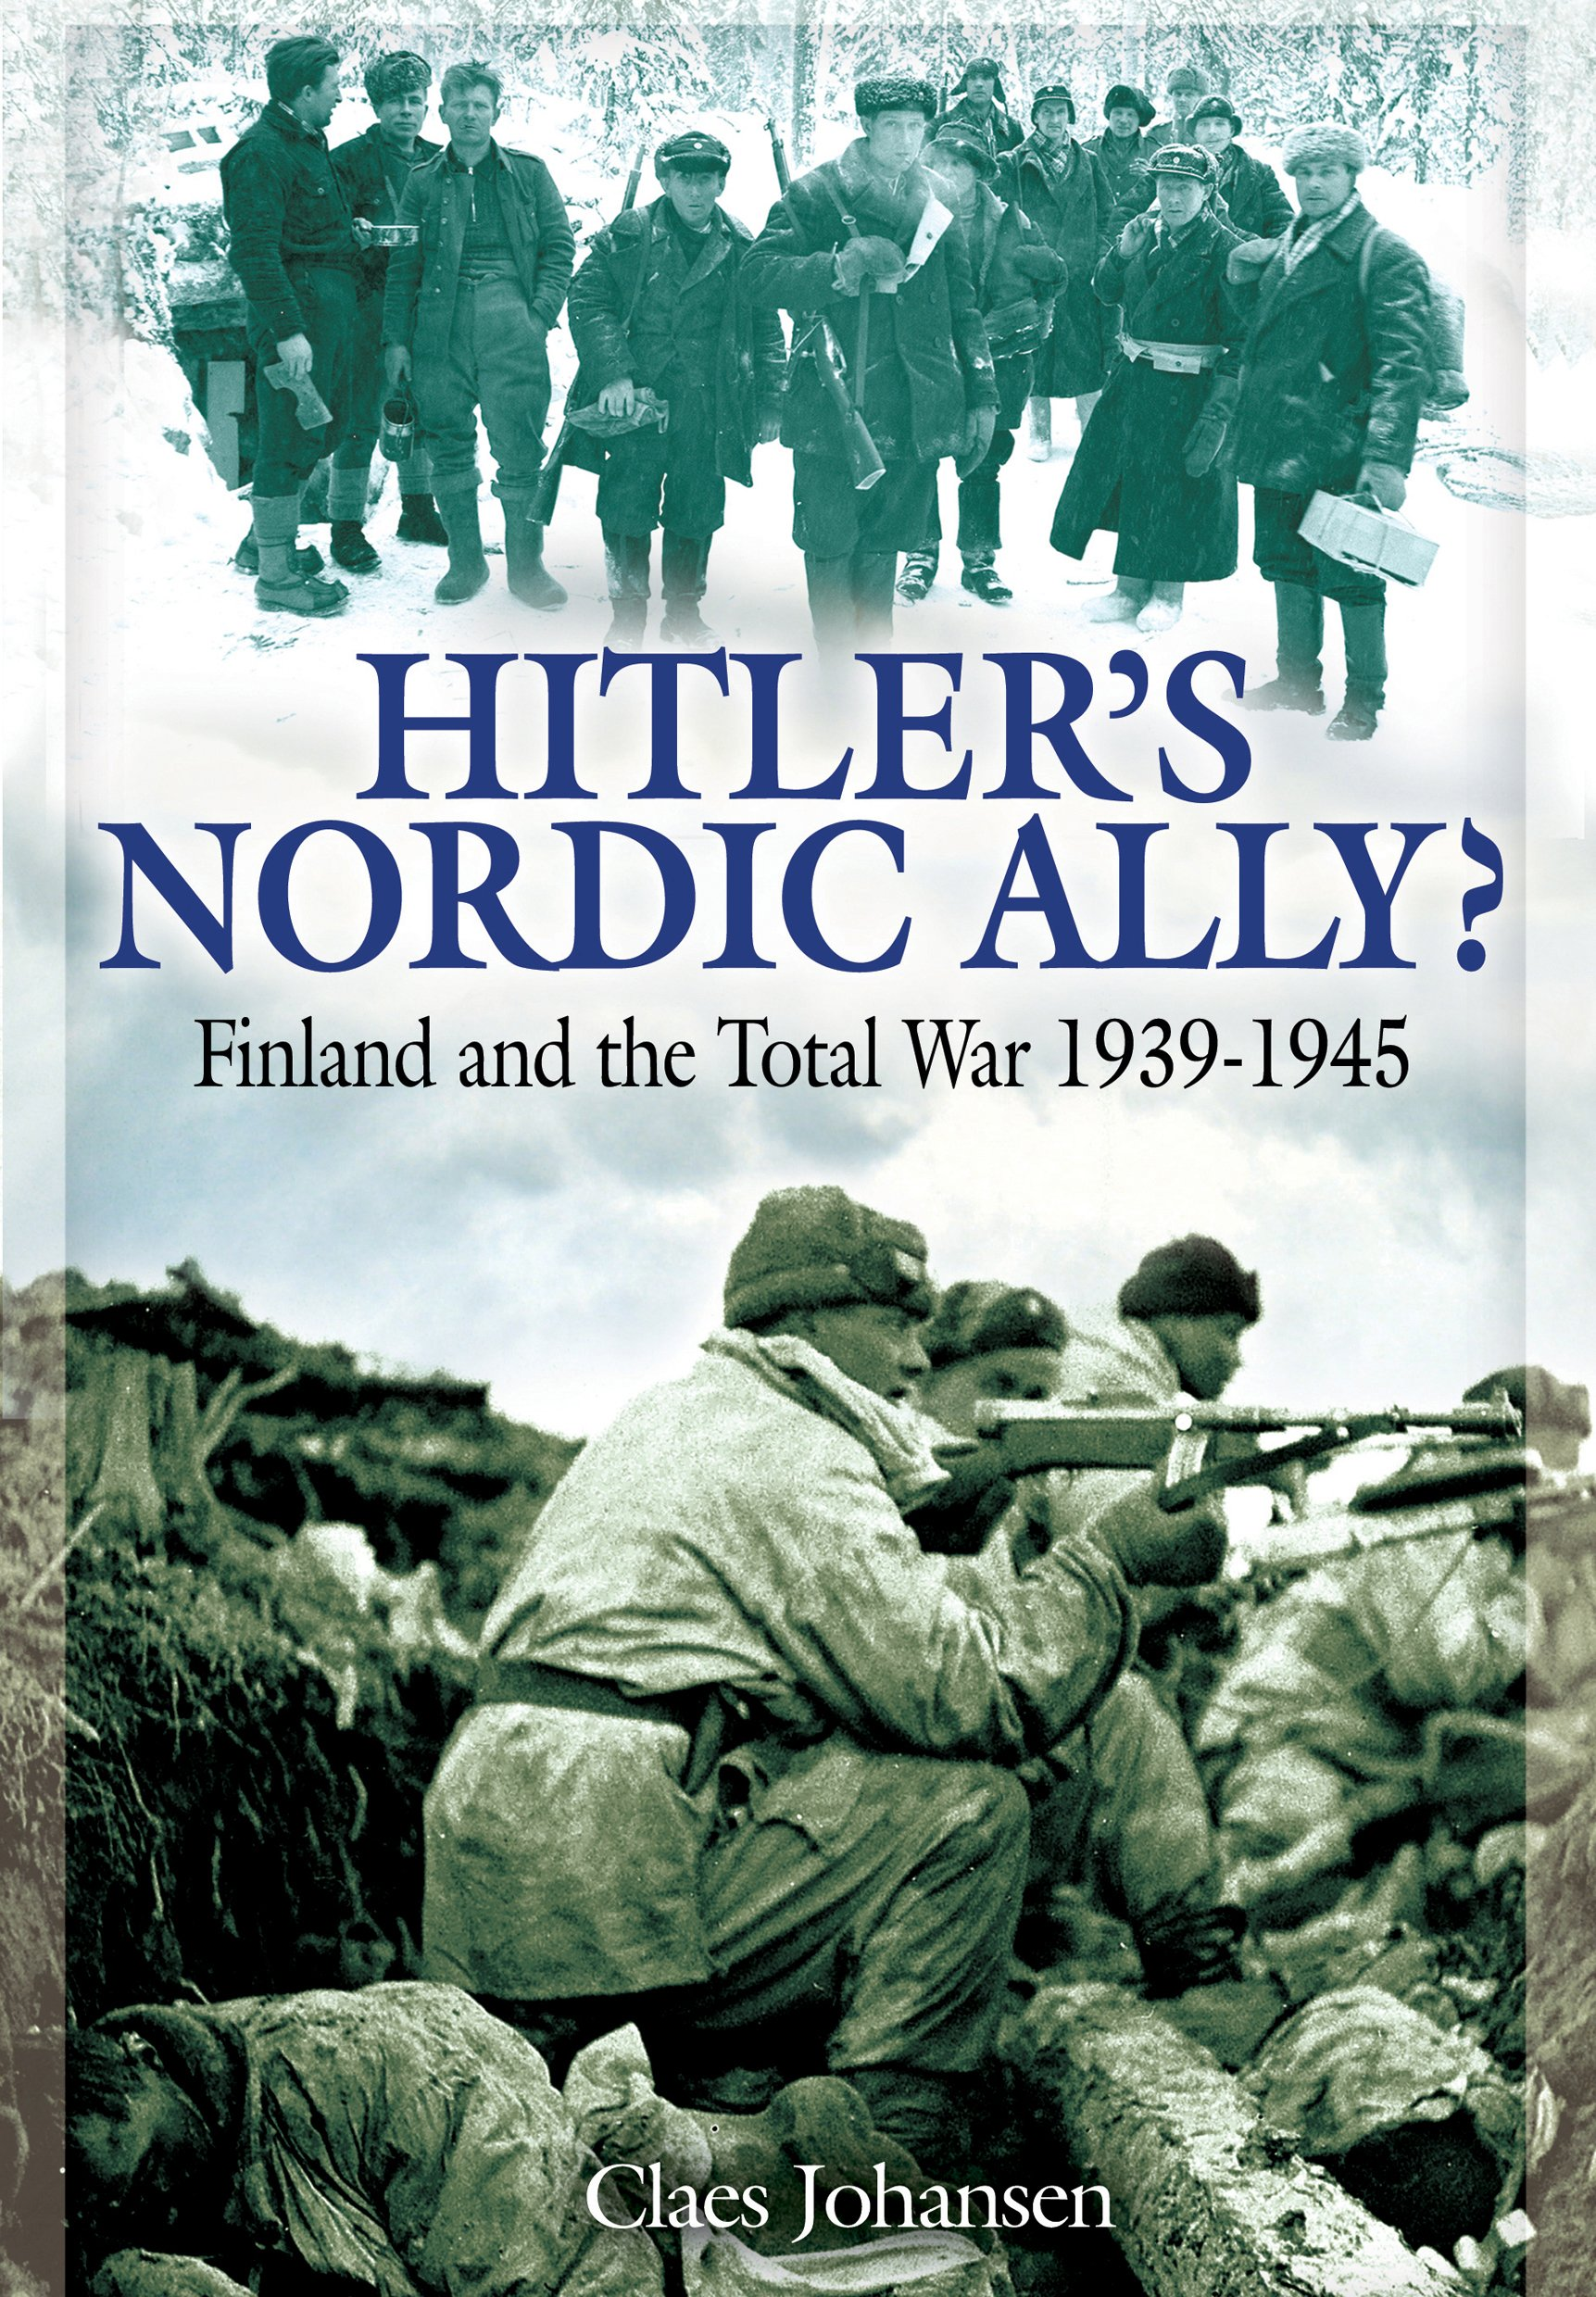 Hitler's Nordic Ally?: Finland and the Total War 1939-1945